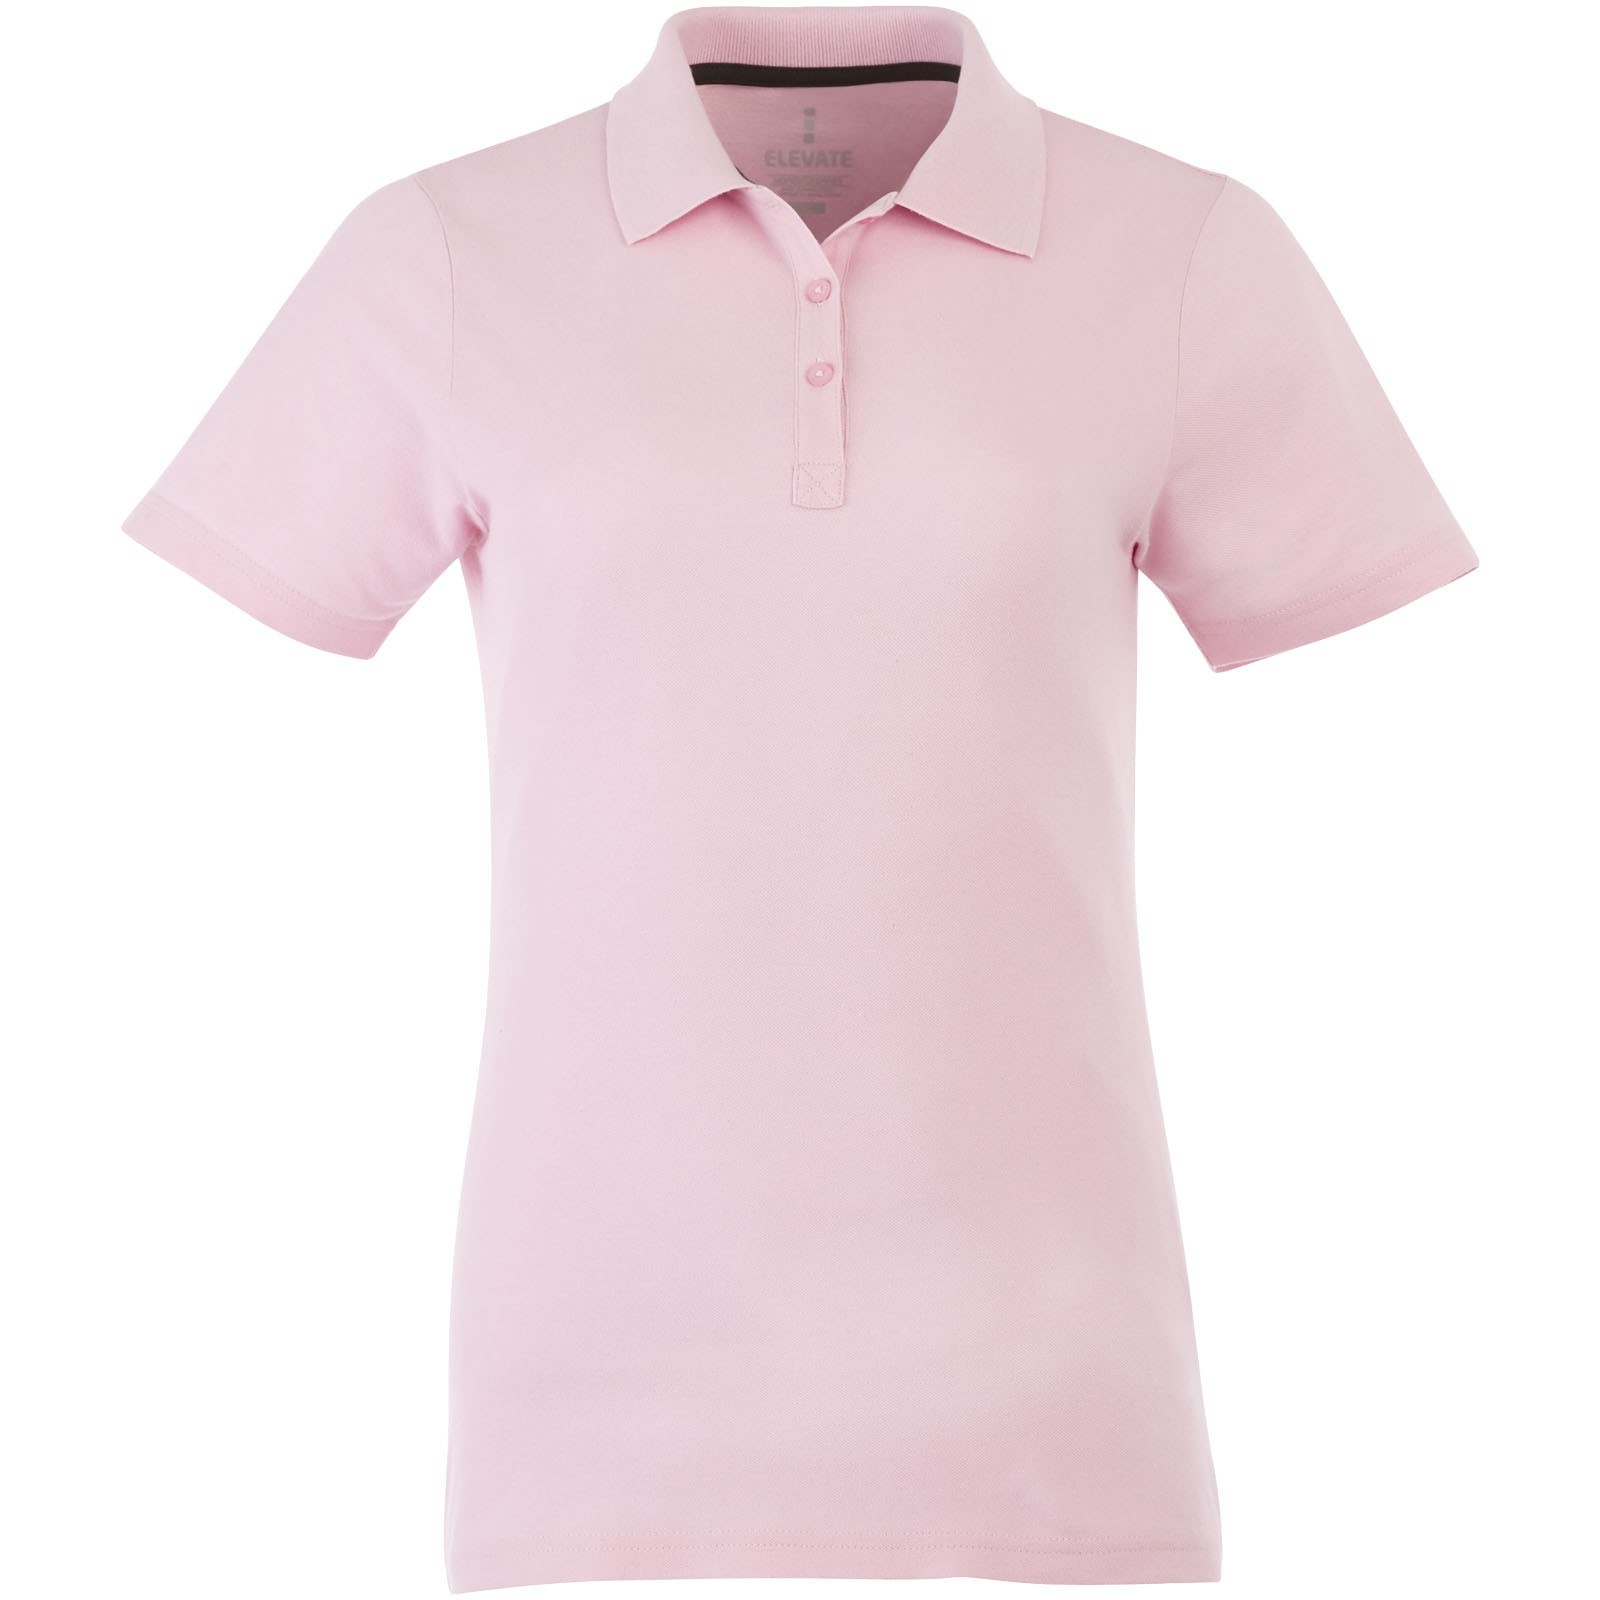 2f4aa31027 Primus Lds Polo, Light Pink, M (Polo T-shirt, 90-100% cotton ...